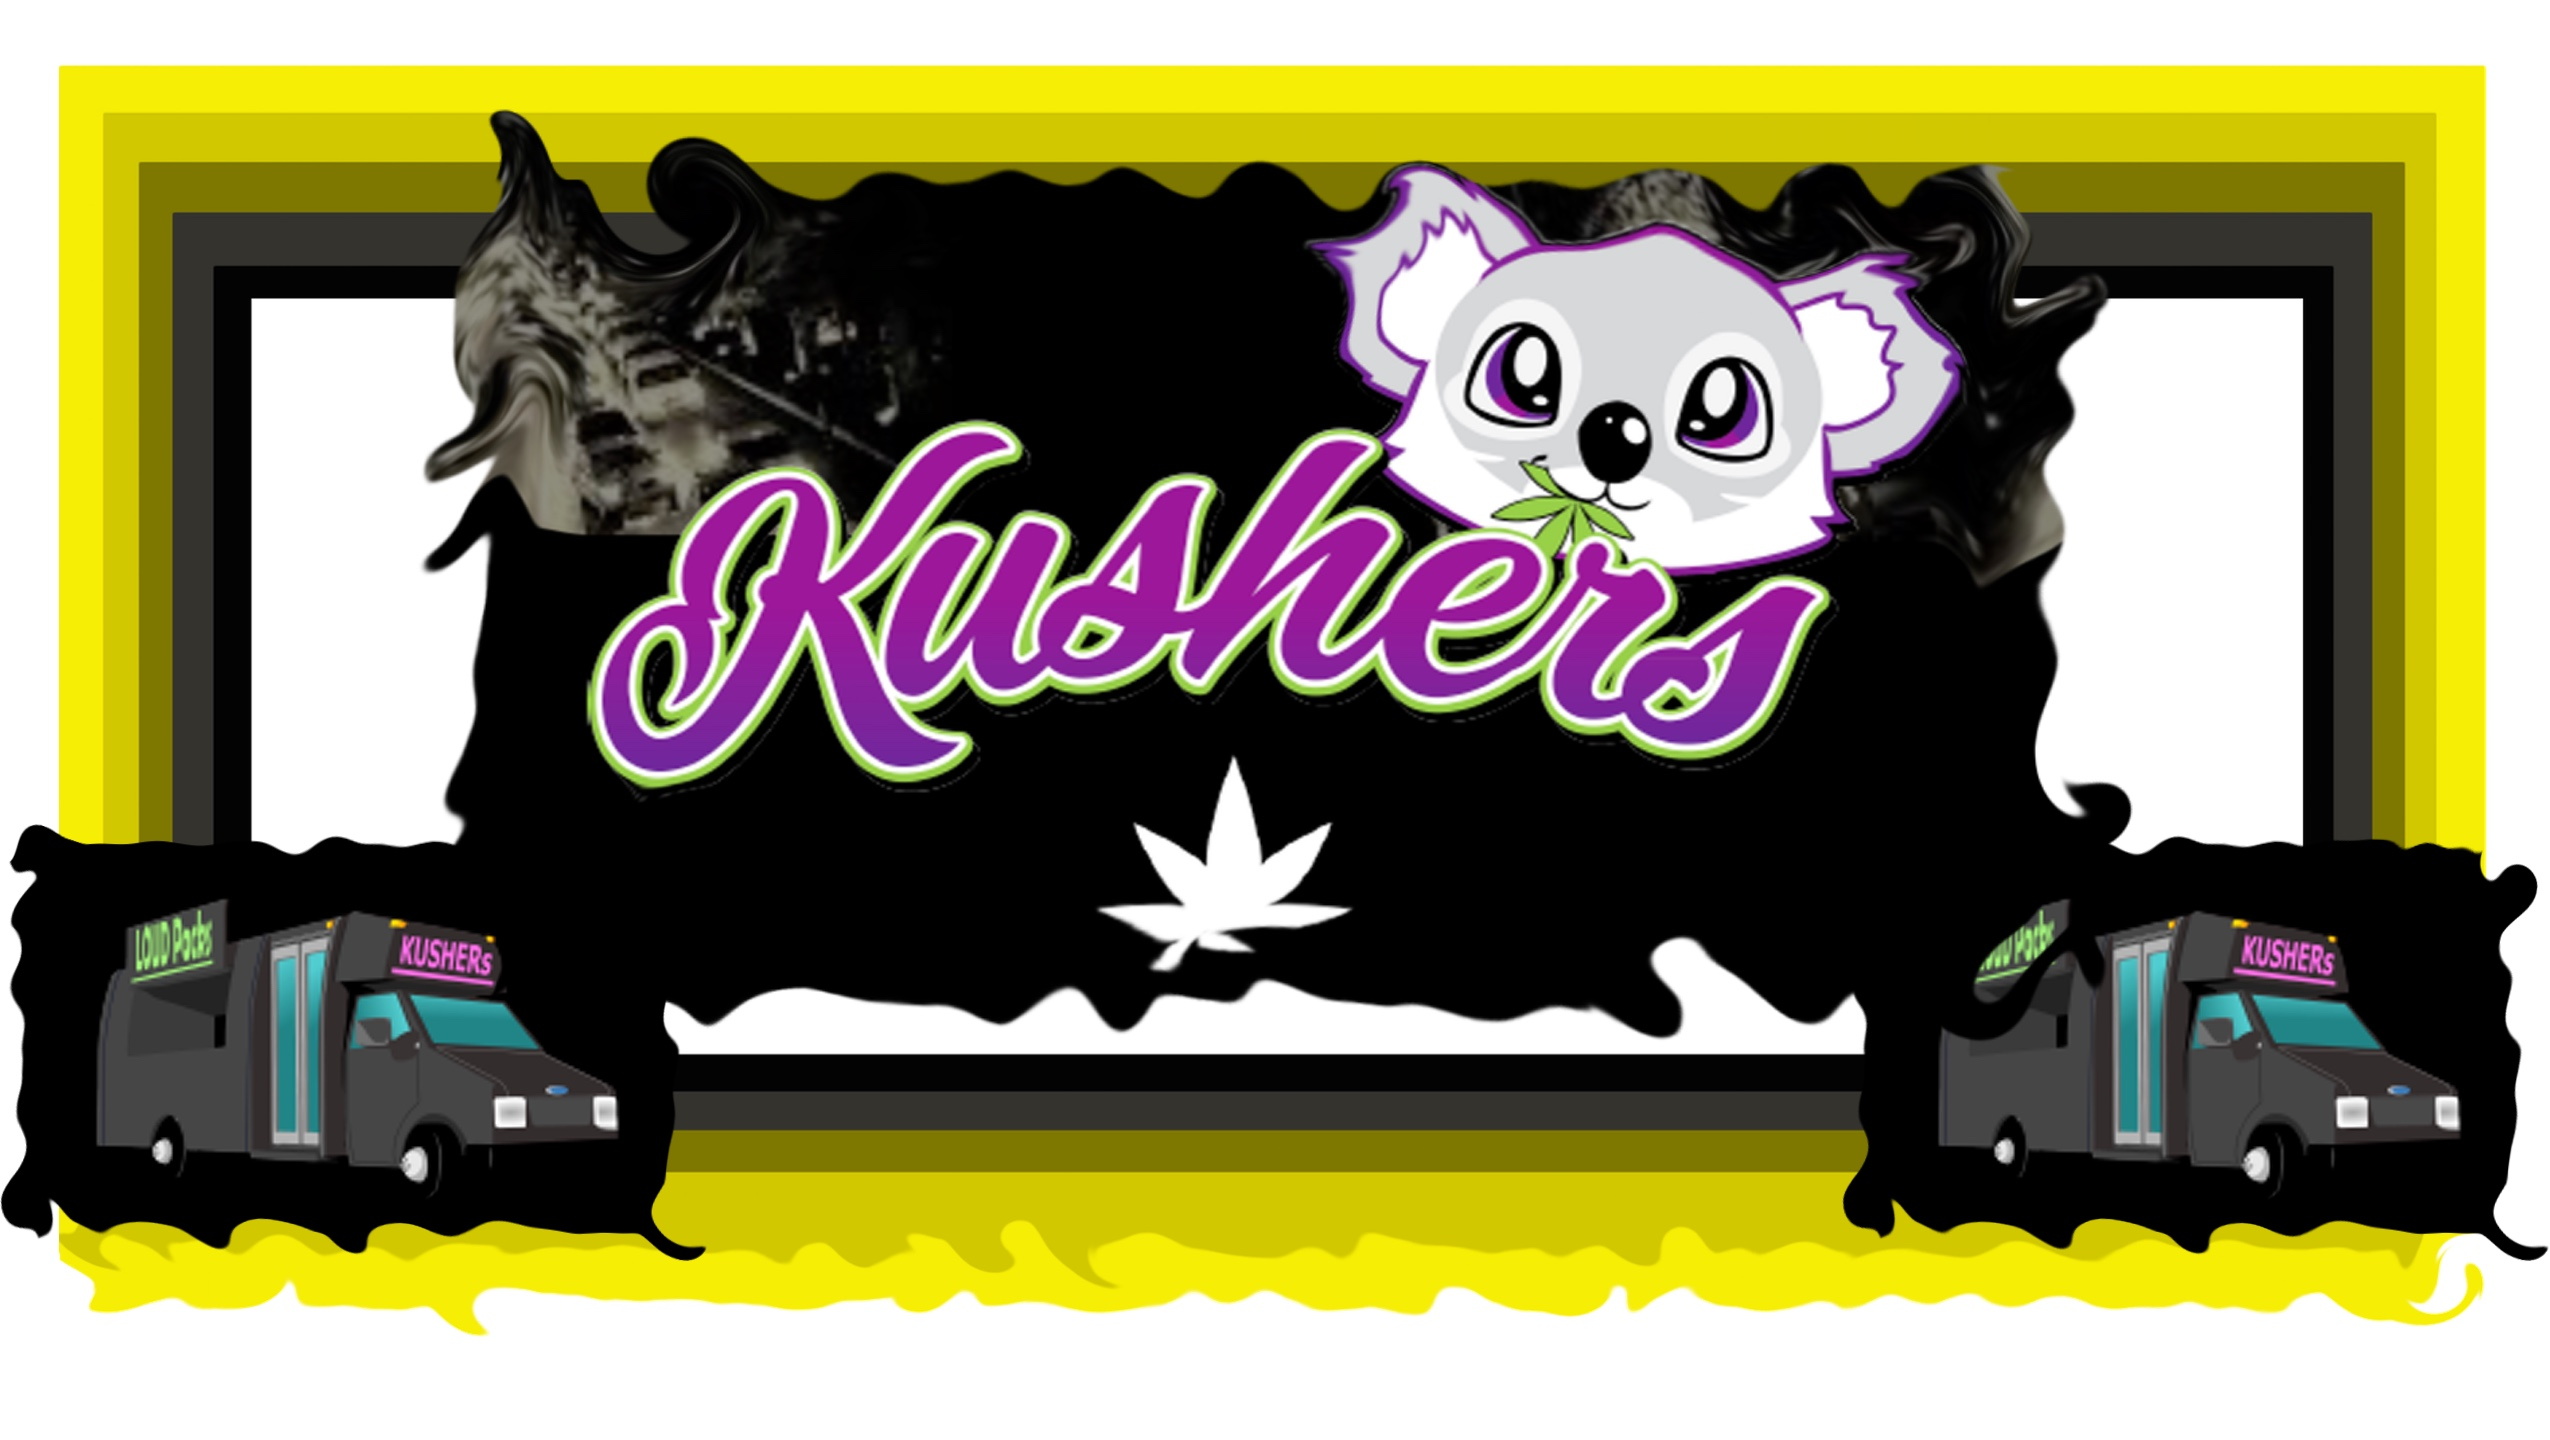 best weed in las vegas,las vegas best weed,best cannabis in las vegas,closest cannabis dispensary in las vegas,cannabis dispensary las vegas,cannabis dispensary in vegas,best cannabis in las vegas,best dispensary in las vegas,las vegas closest cannabis